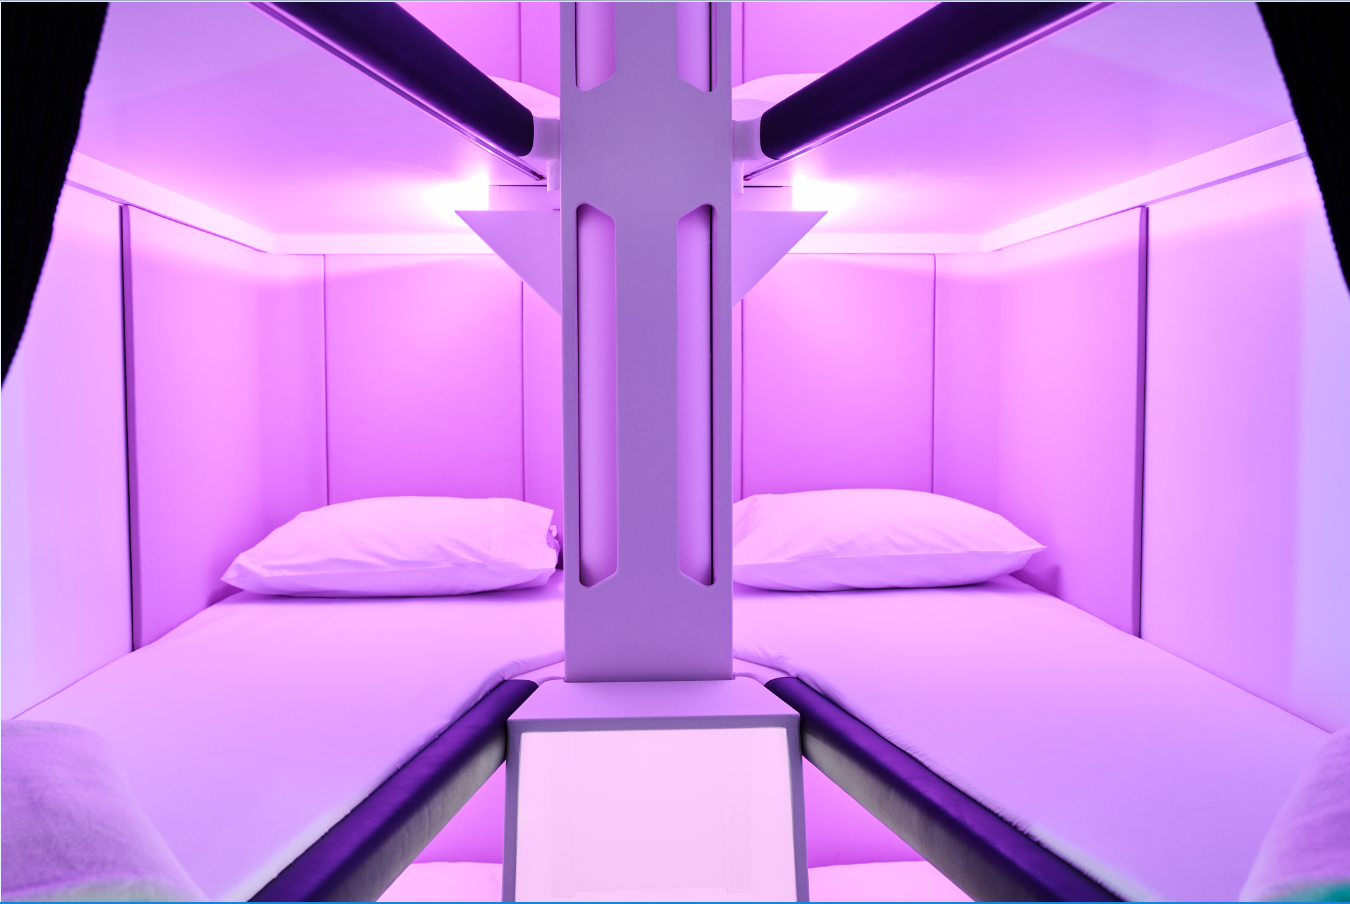 Major airline unveils new lie-flat bunk beds for economy